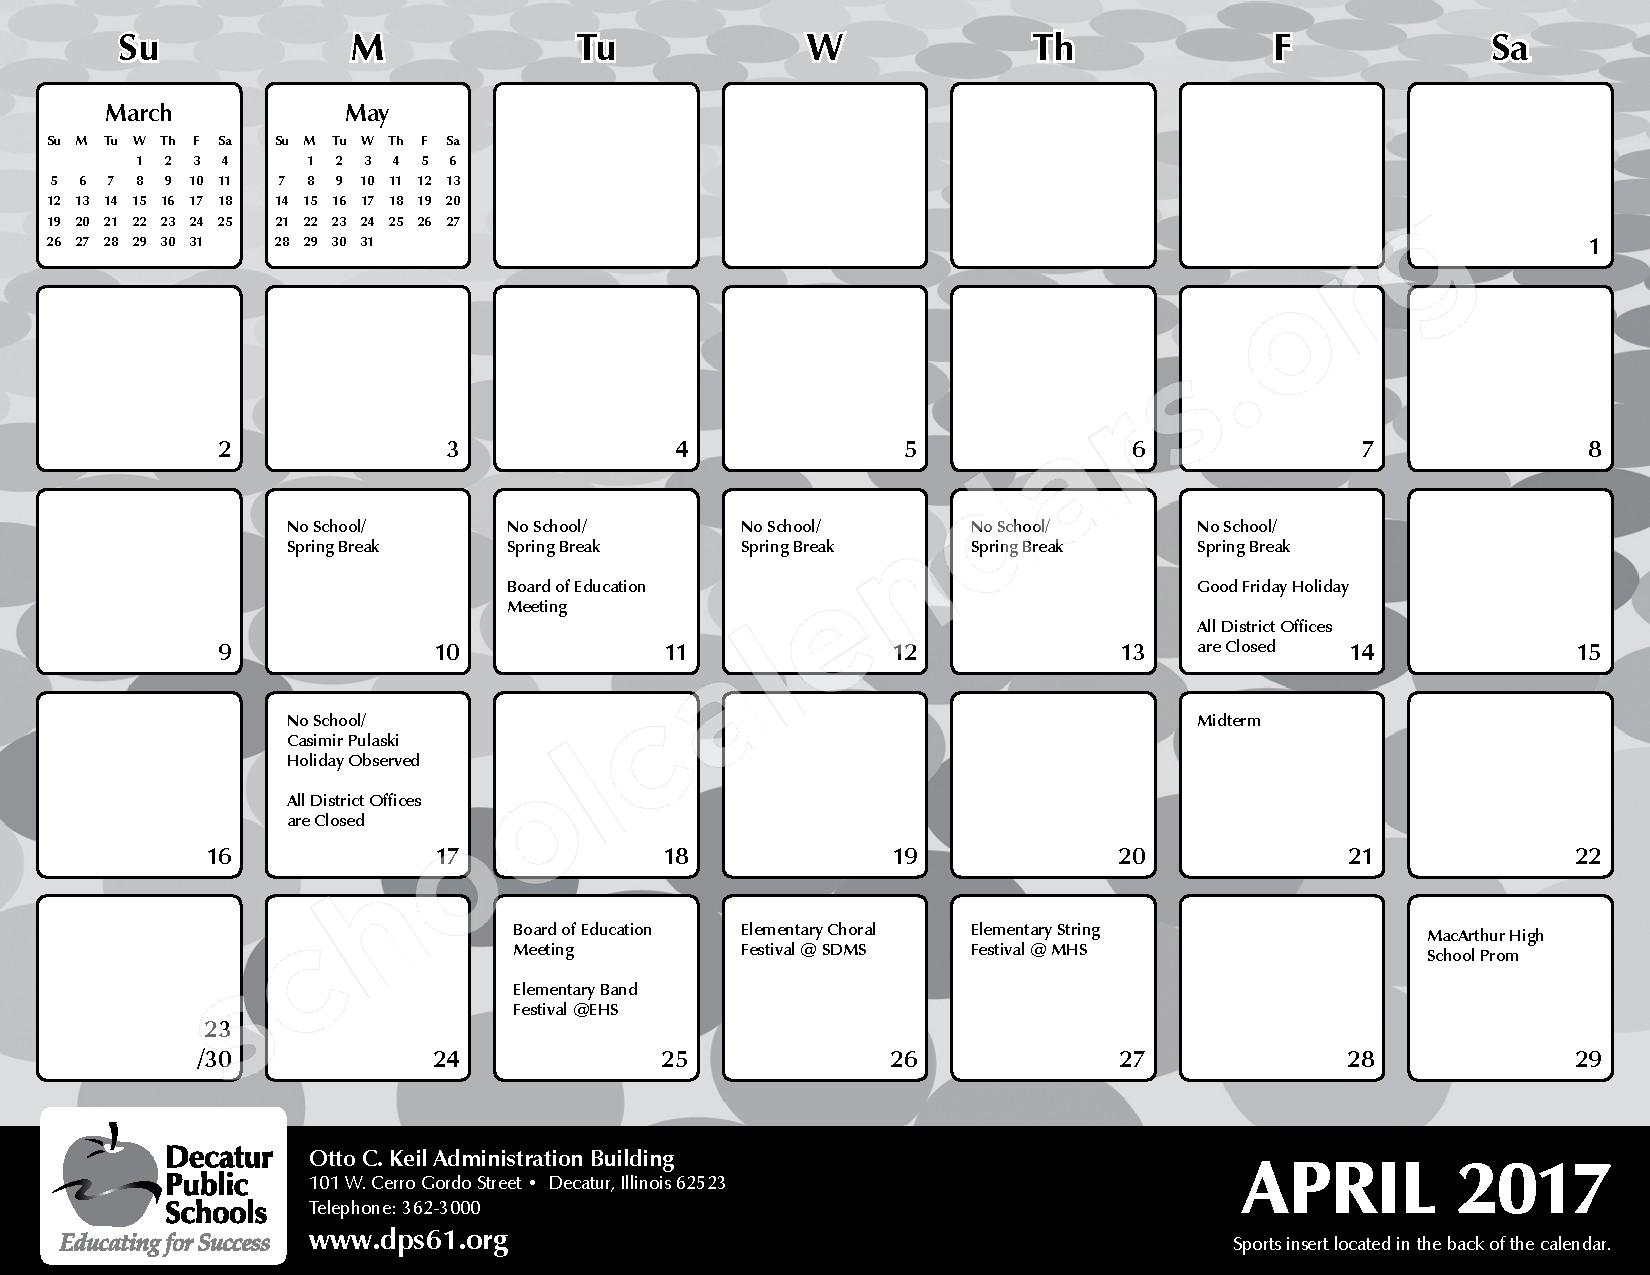 2016 - 2017 District Calendar – Michael E Baum Elementary School – page 21